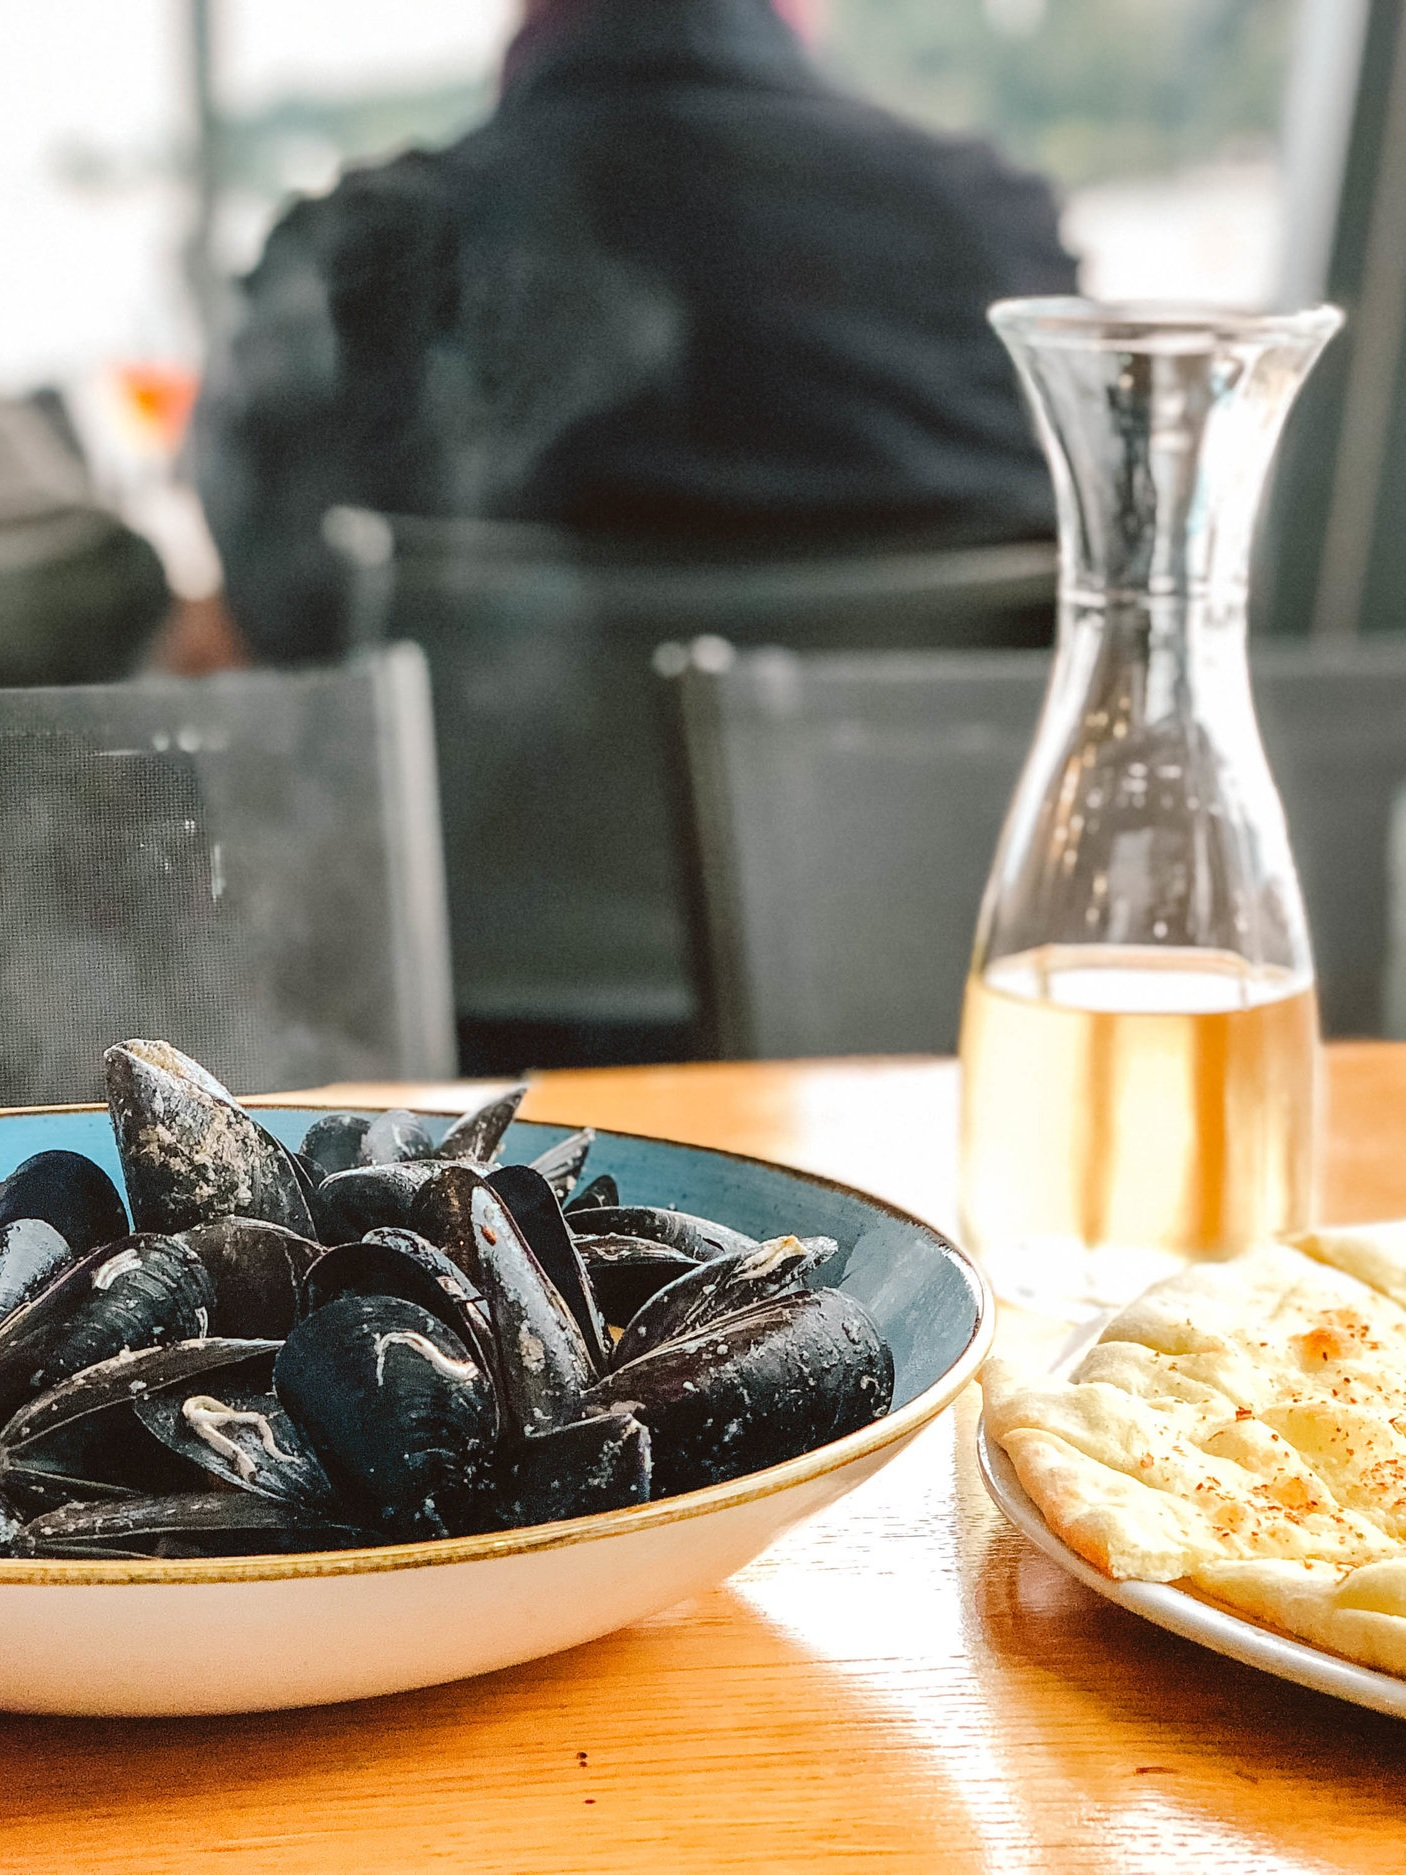 Mussels, pizza bread and wine at Maestral, Rovinj, Istria, Croatia